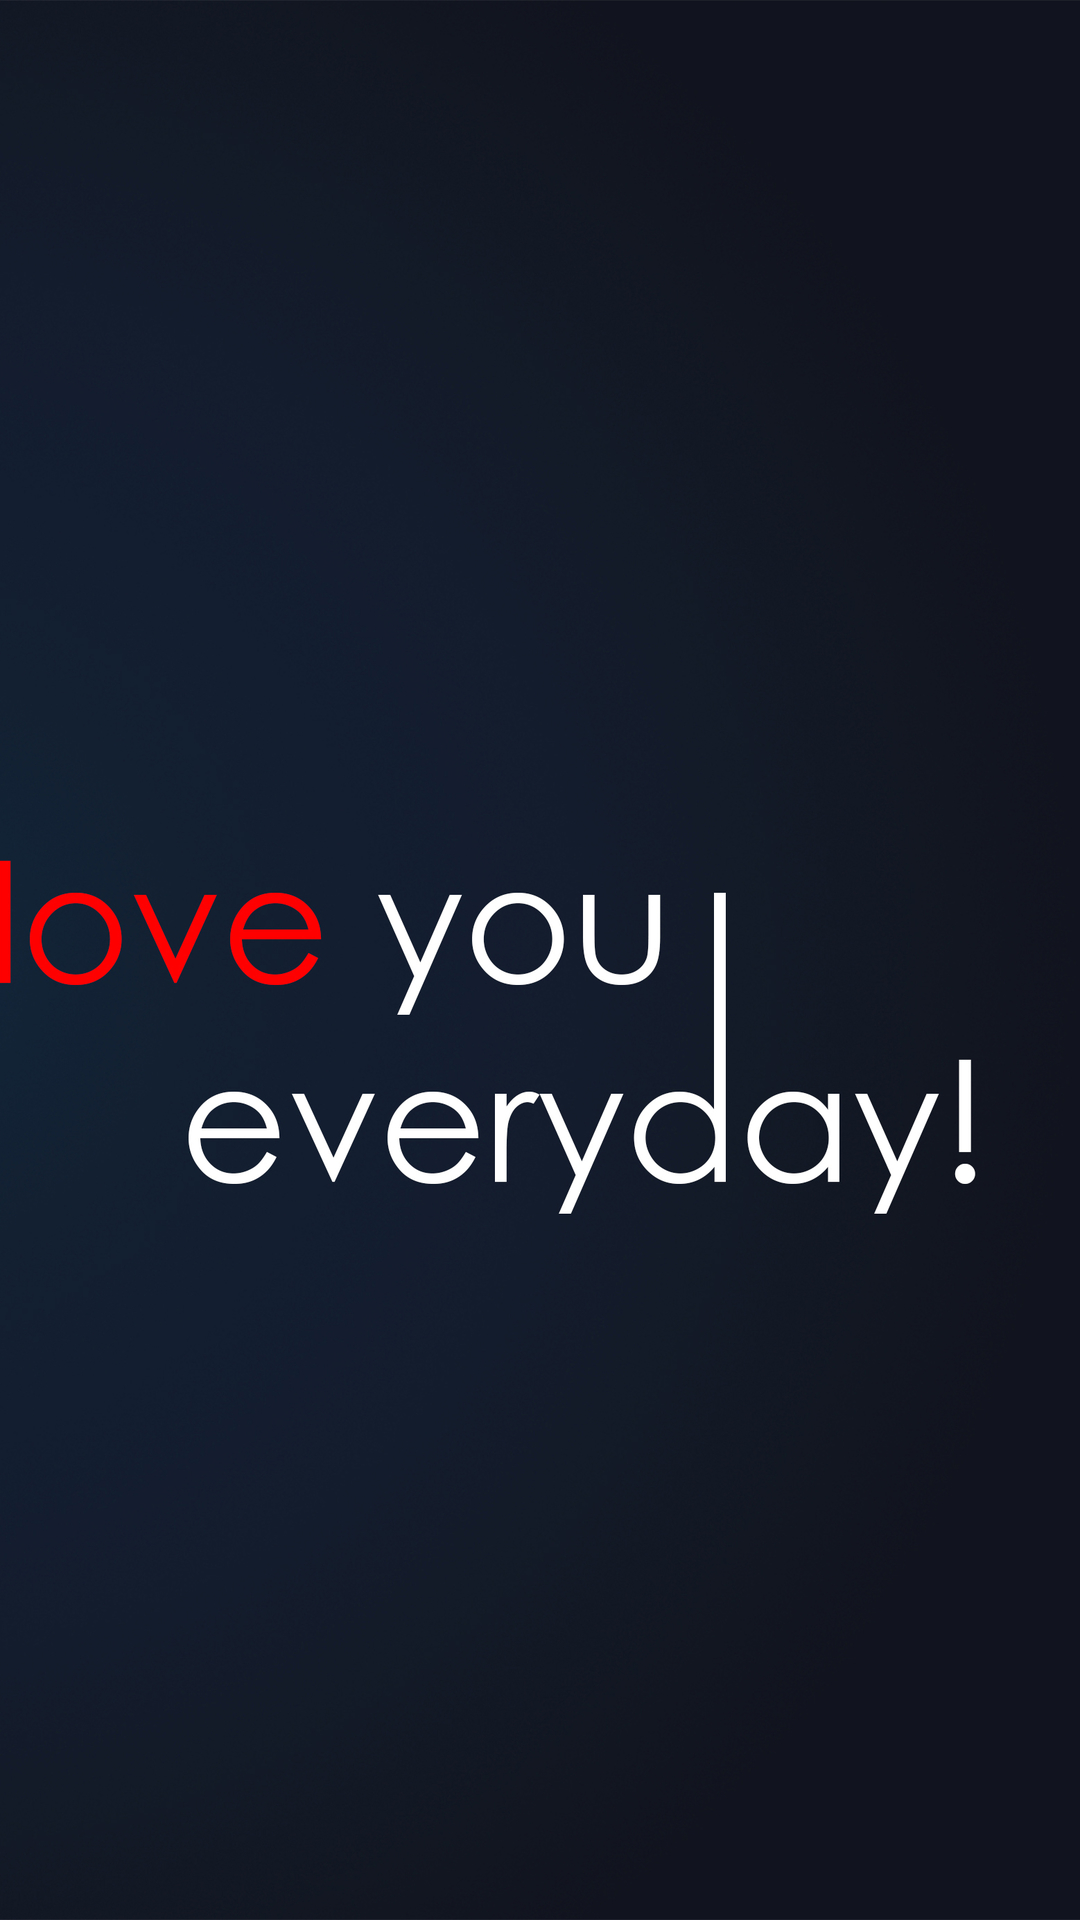 Love You Everyday Android Wallpaper Don T Let The Fear 1080x1920 Wallpaper Teahub Io